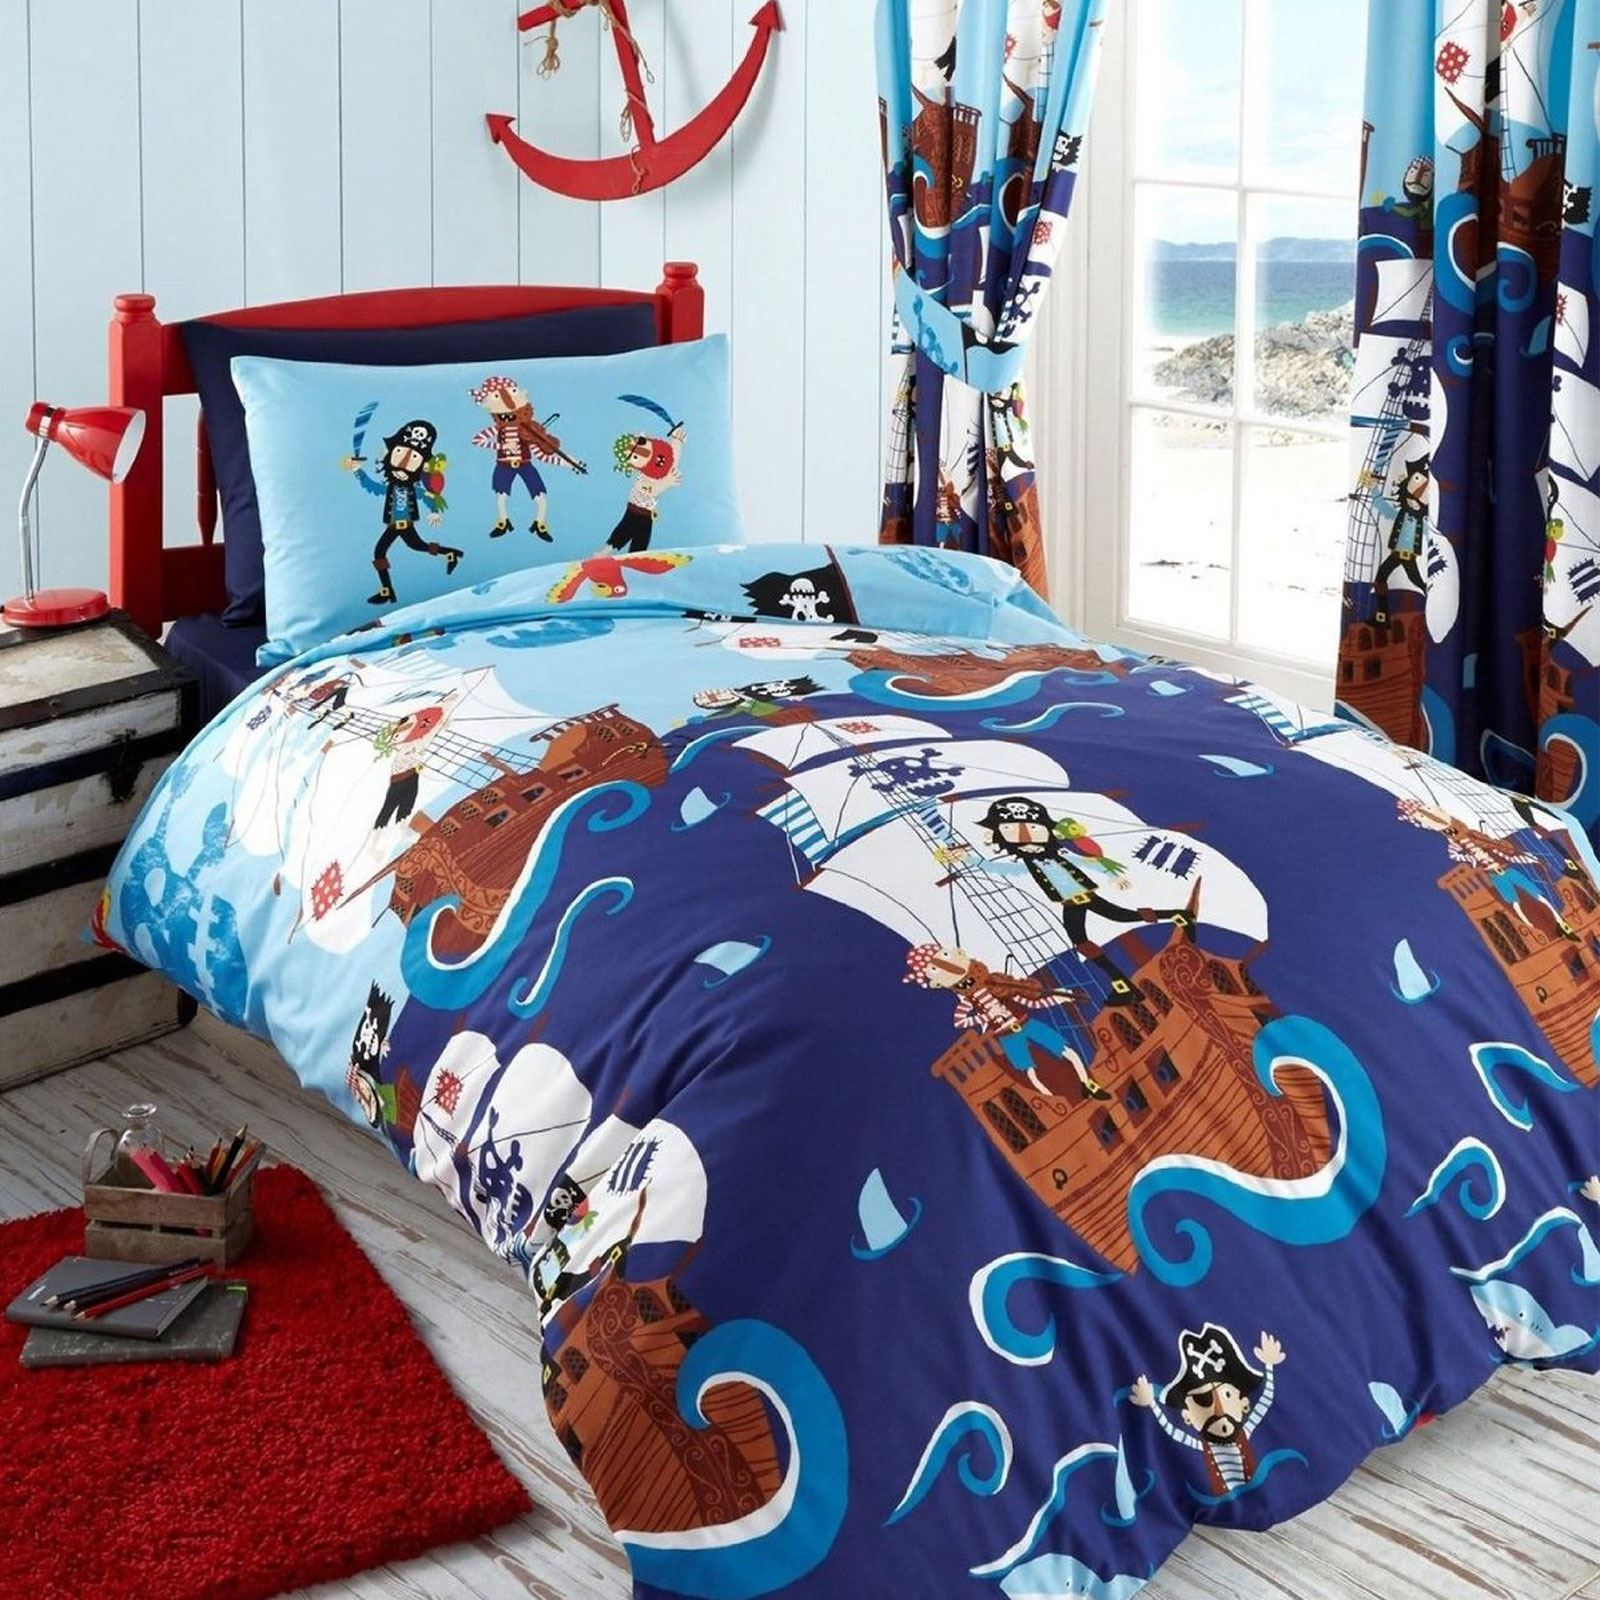 swashbuckle piraten jungen schlafzimmer bettw sche. Black Bedroom Furniture Sets. Home Design Ideas